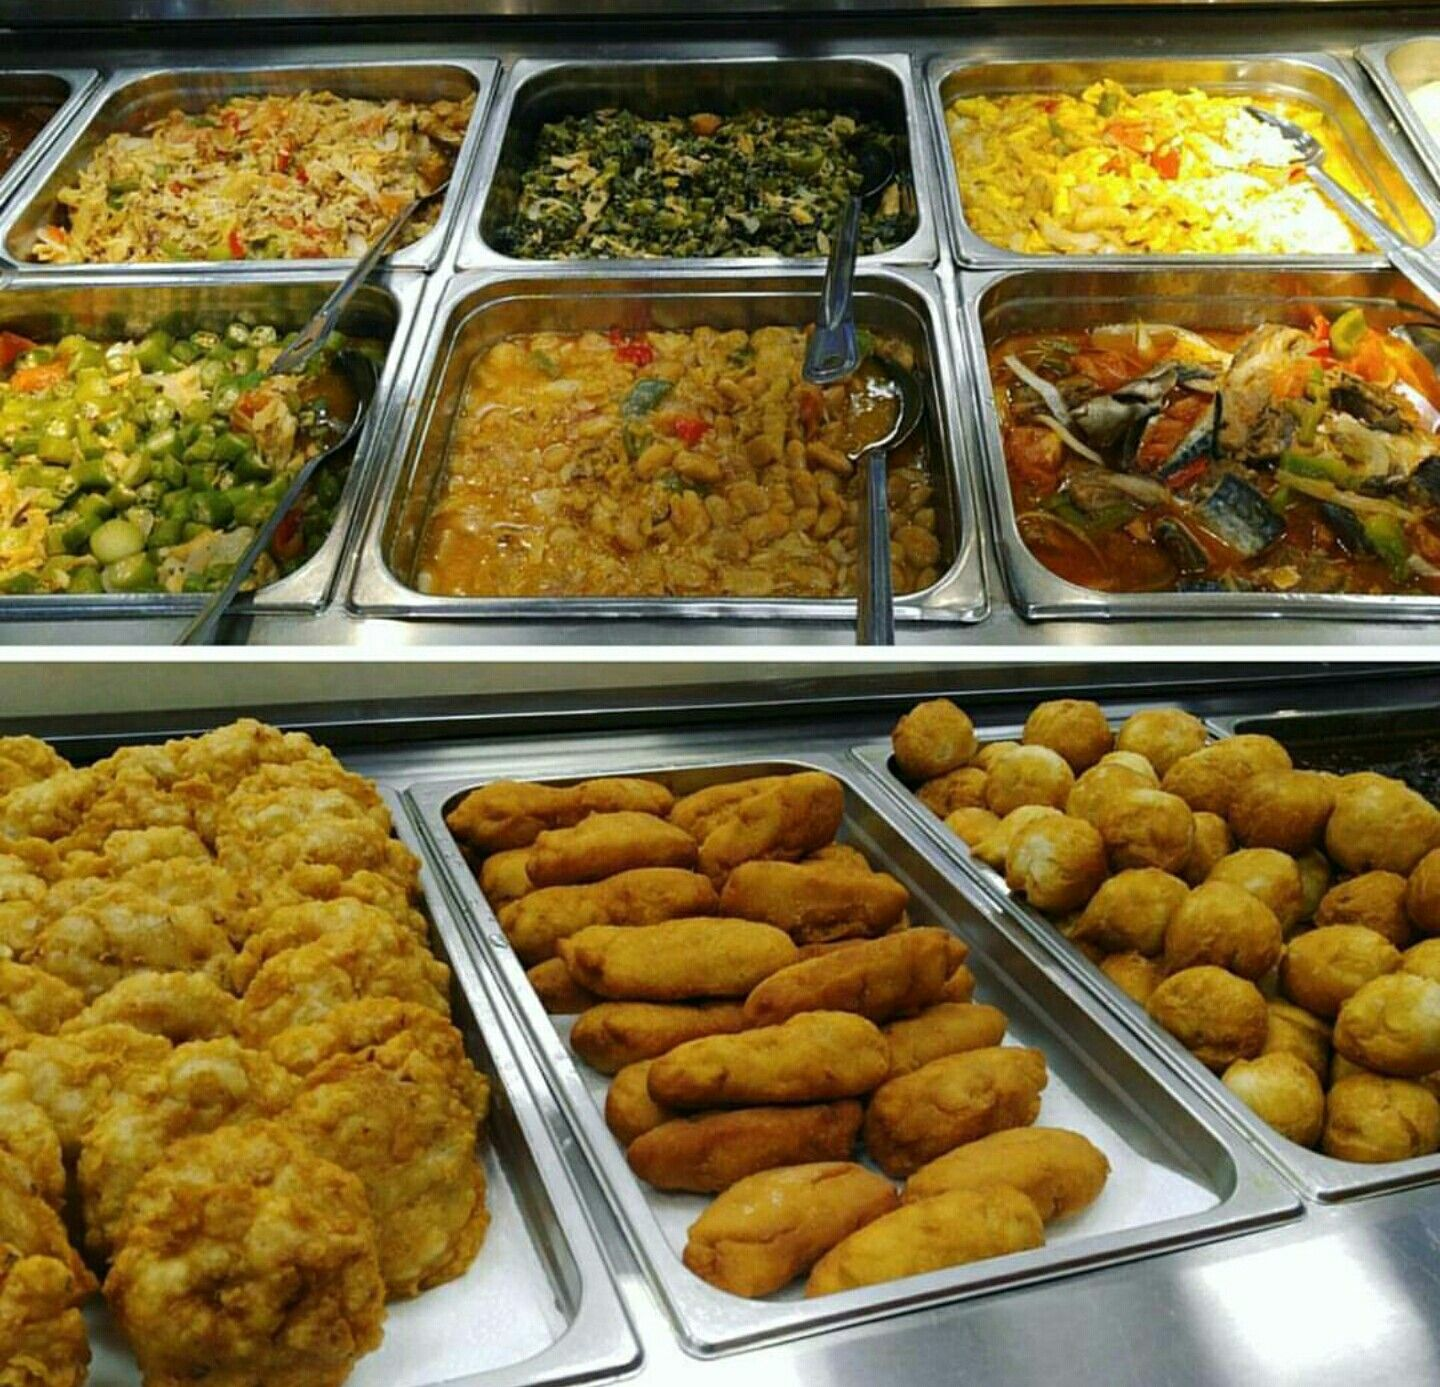 Pin By Karla Jones On Best Of Jamaica Buffet Food Catering Food Displays Catering Food